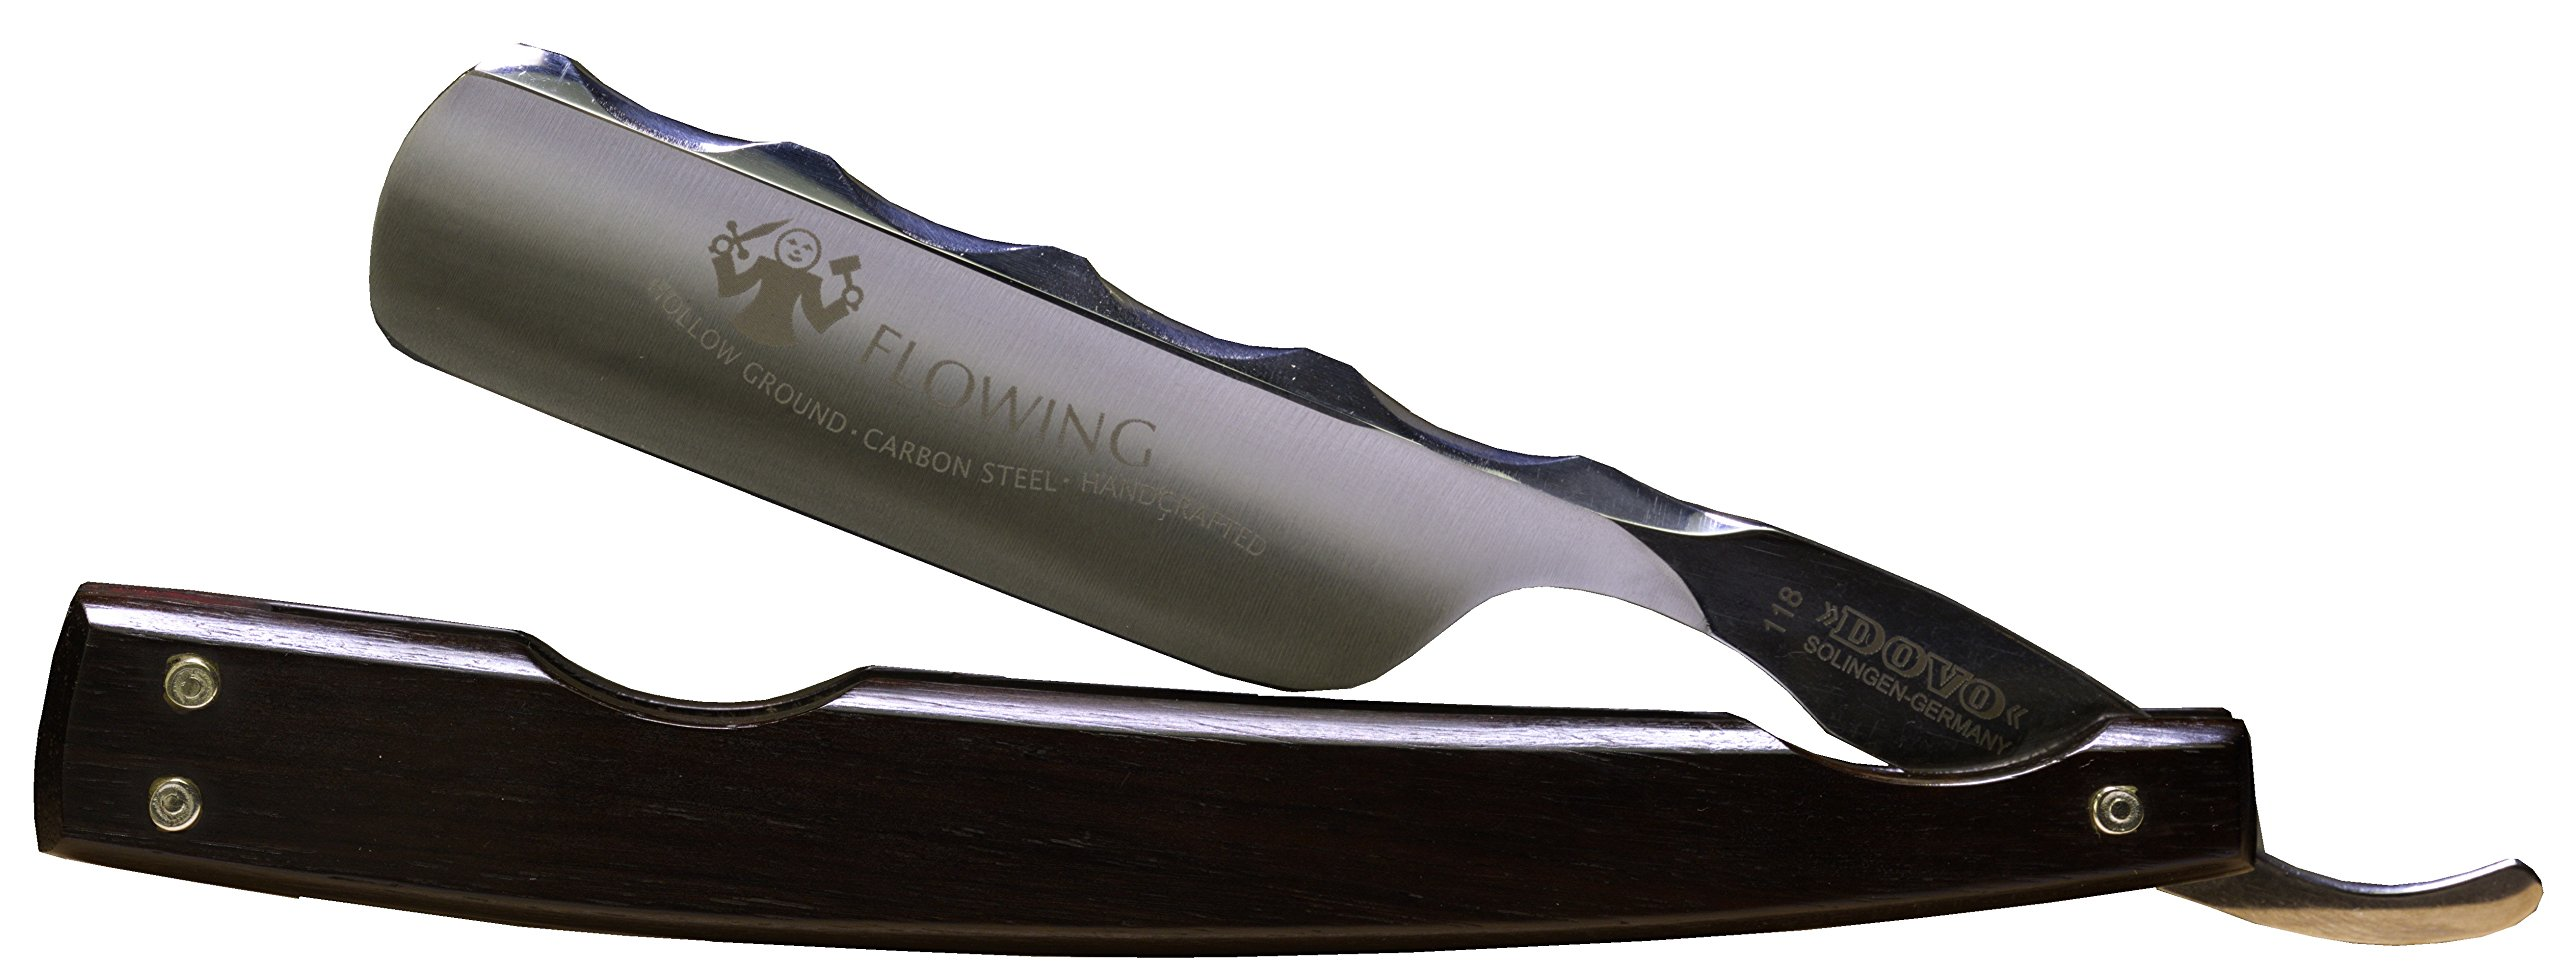 Dovo 1186811 Flowing 6/8'' Full Hollow Ground Carbon Steel Straight Razor with Shave Ready Option (Shave Ready, Unsealed)